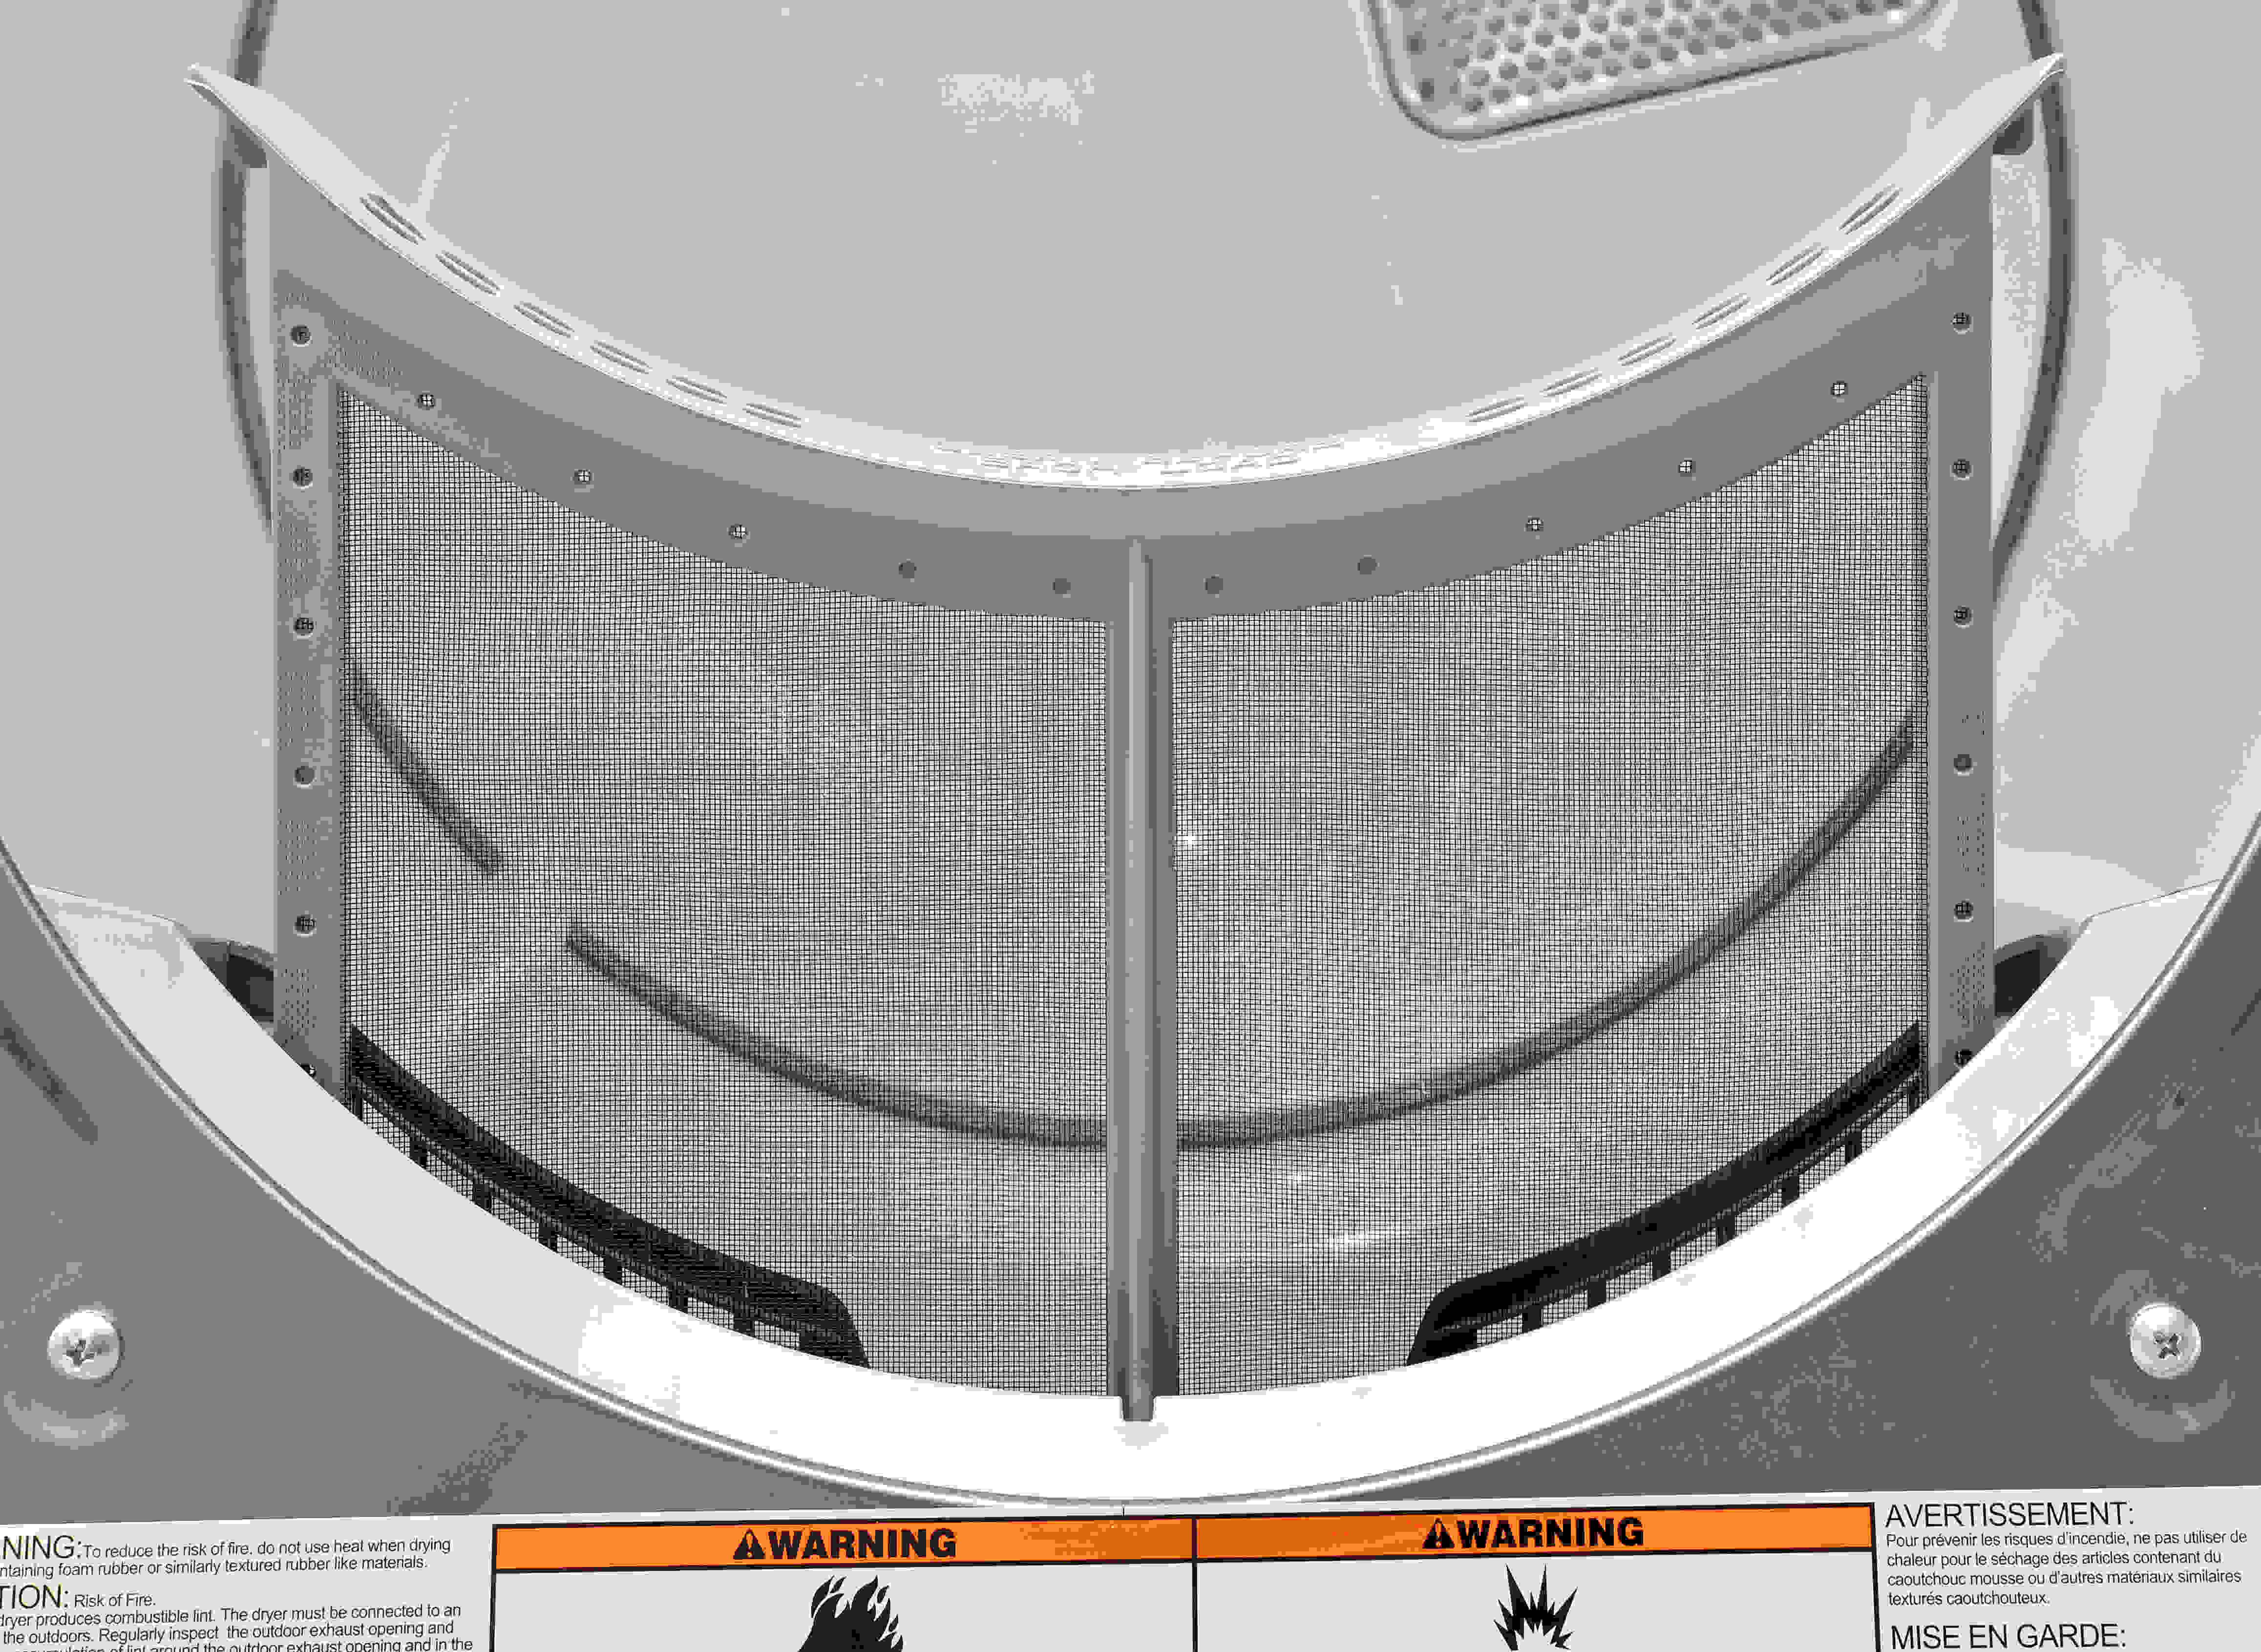 A conventional lint trap for the highly conventional Whirlpool 90HE series dryer.